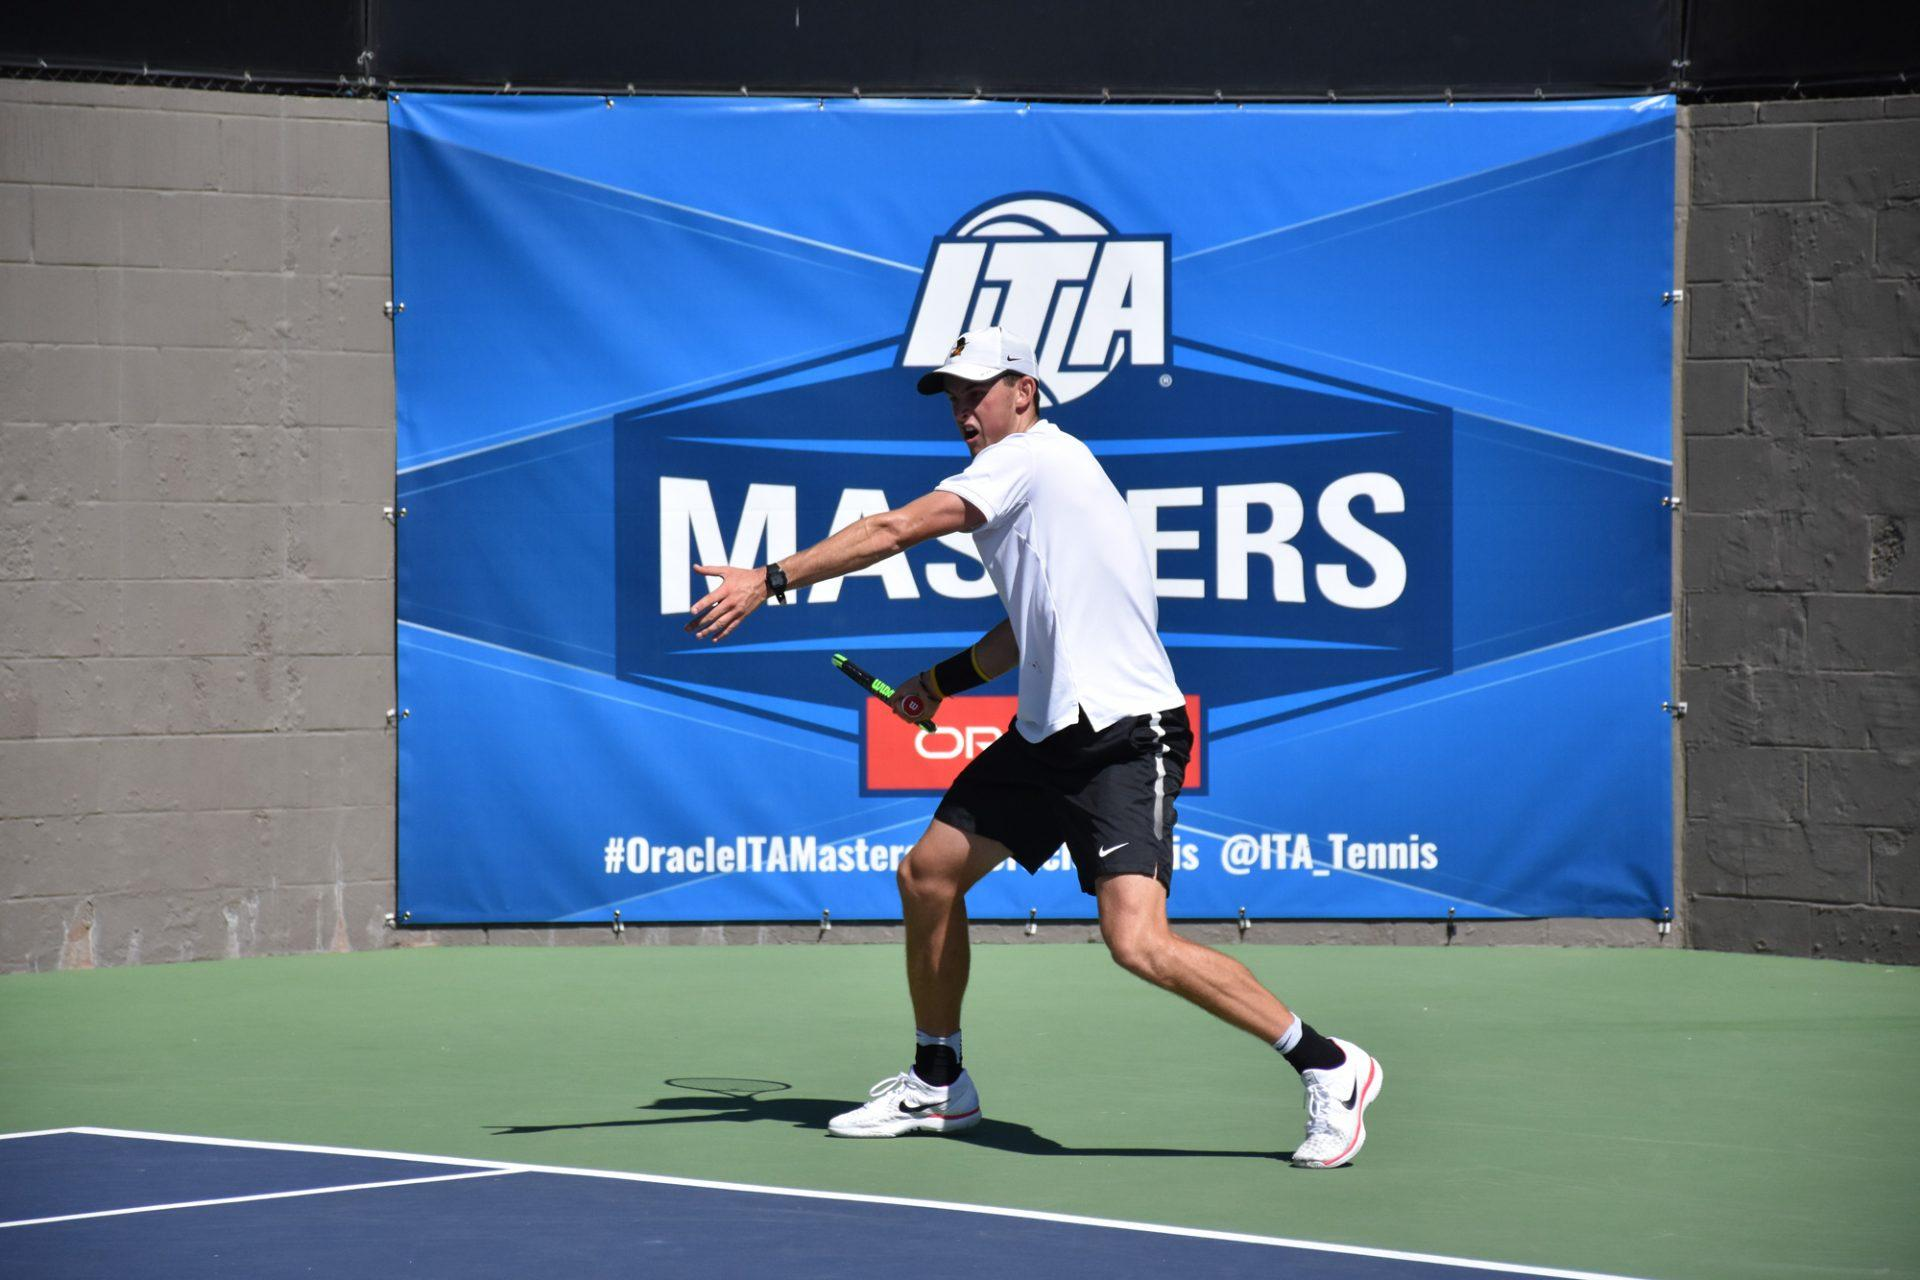 Senior+Scott+Webster+serving+the+ball+during+a+match+at+the+master%E2%80%99s+tournament+in+Malibu%2C+California.